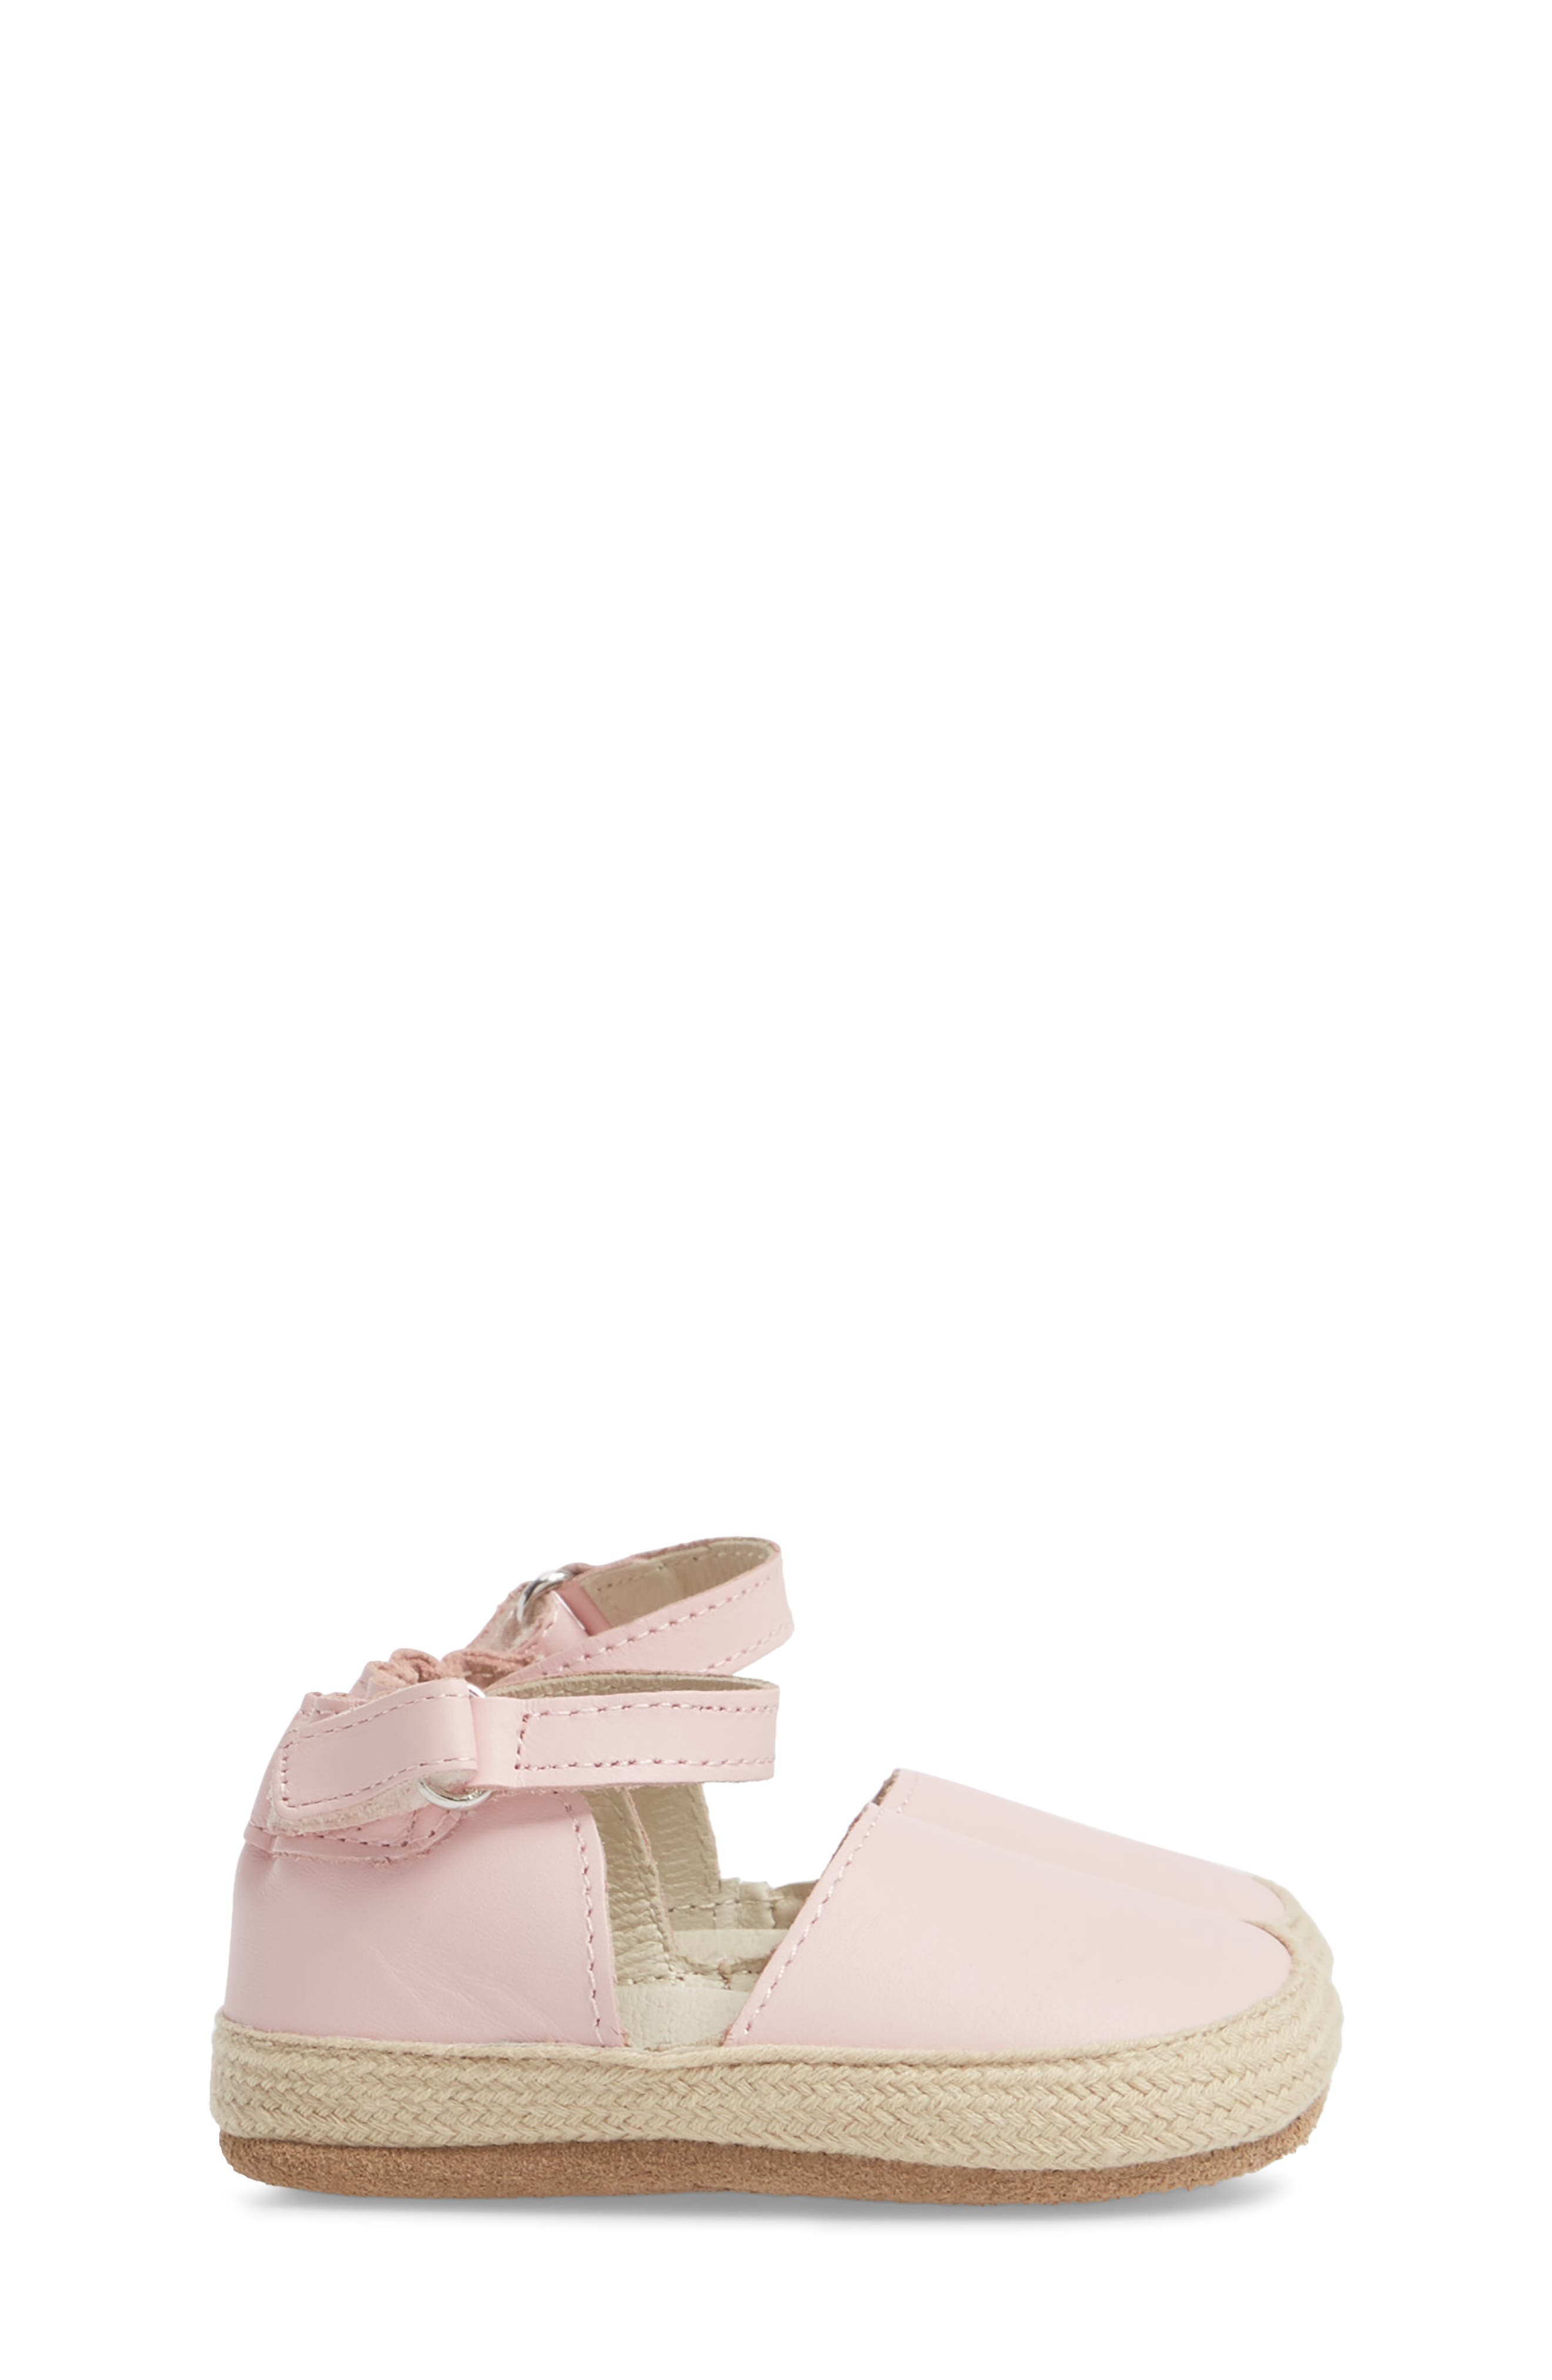 Kelly Soft Sole Espadrille Sandal,                             Alternate thumbnail 3, color,                             PINK